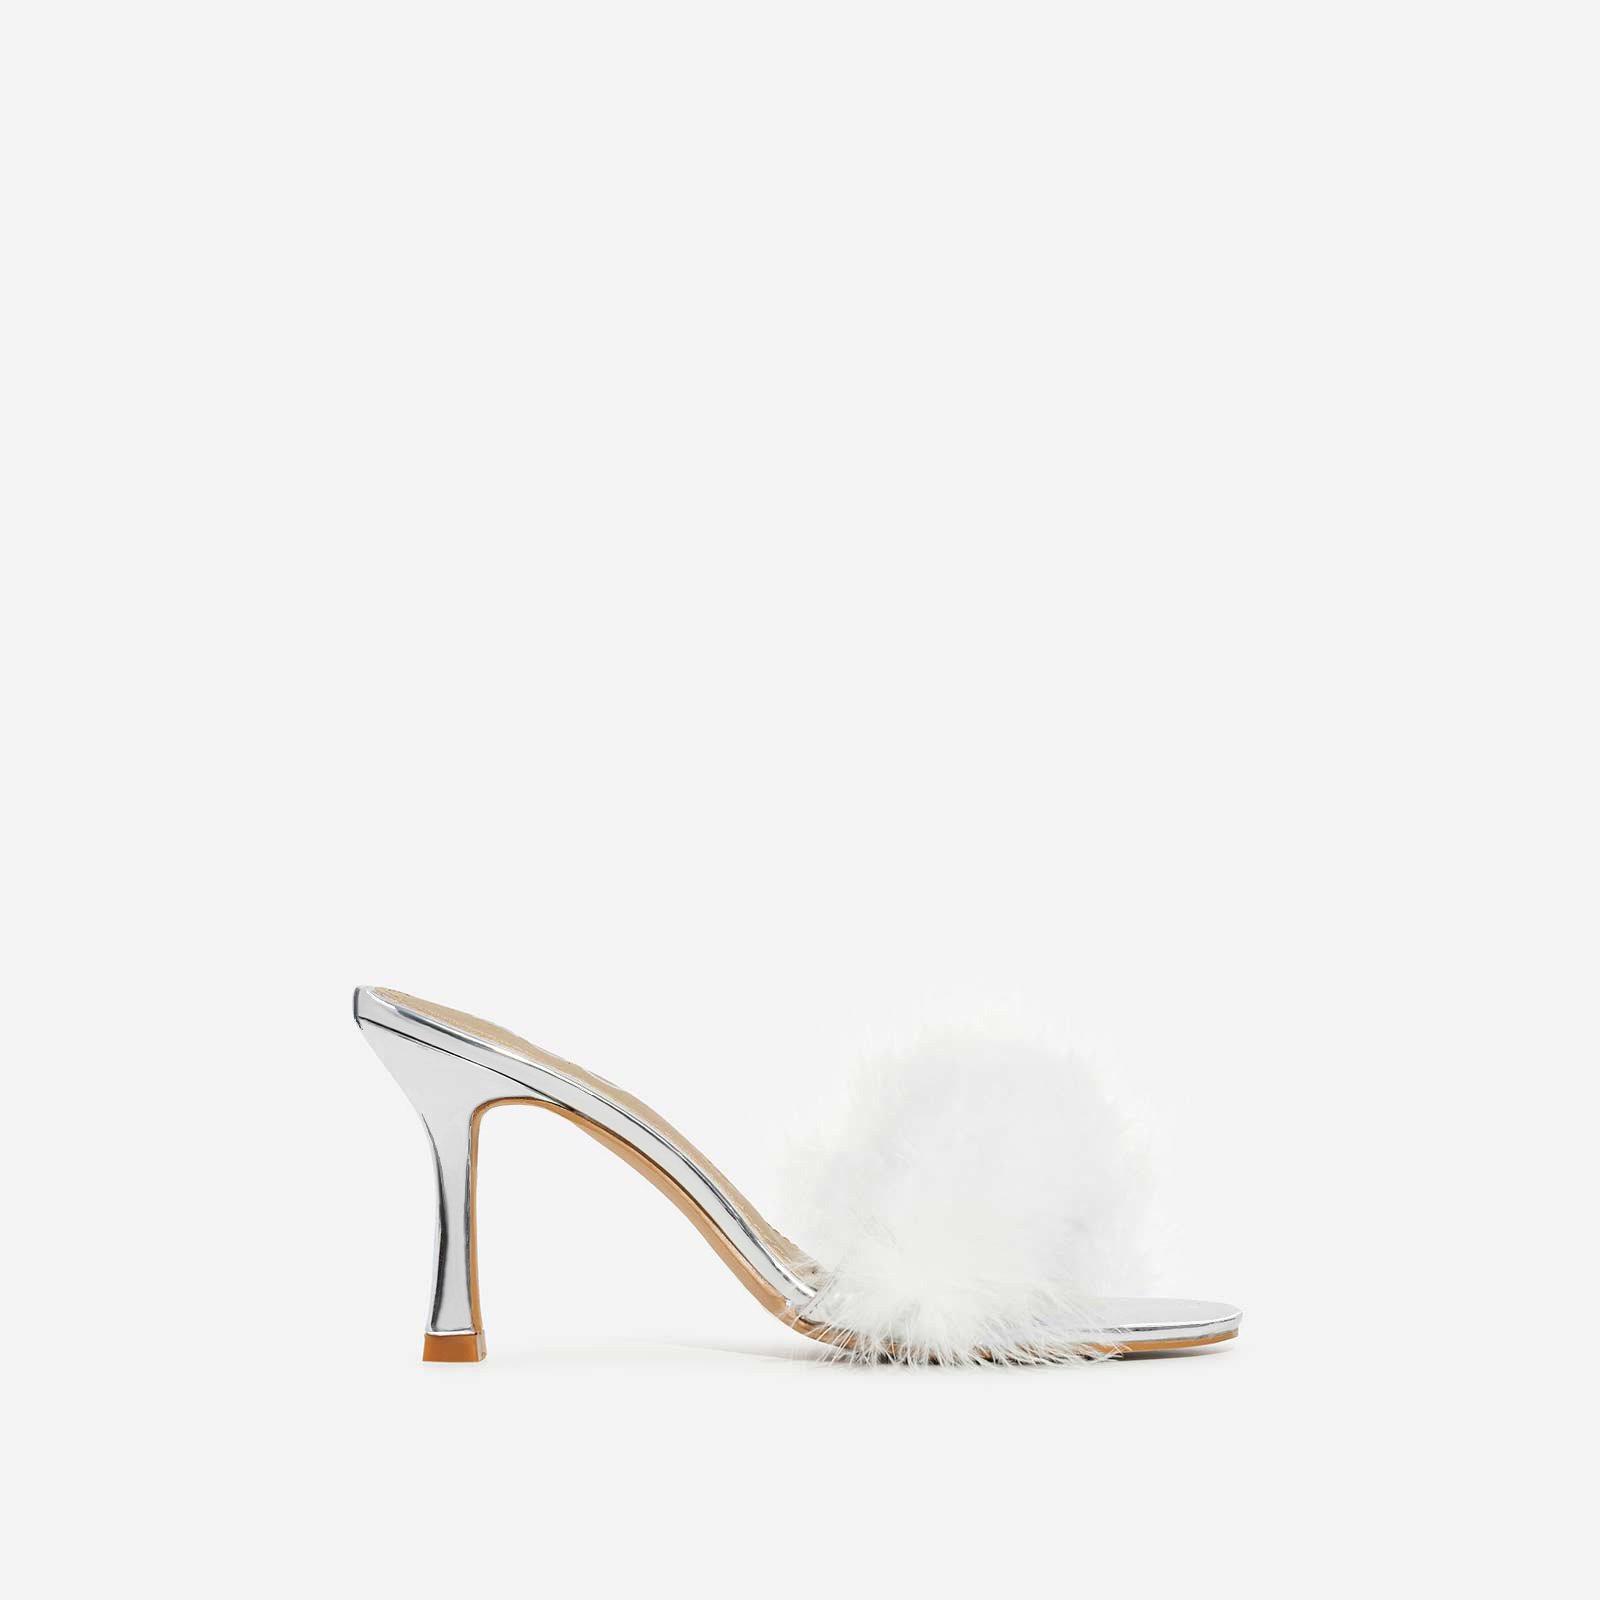 Fairydust Faux Feather Peep Toe Kitten Heel Mule In Silver Patent